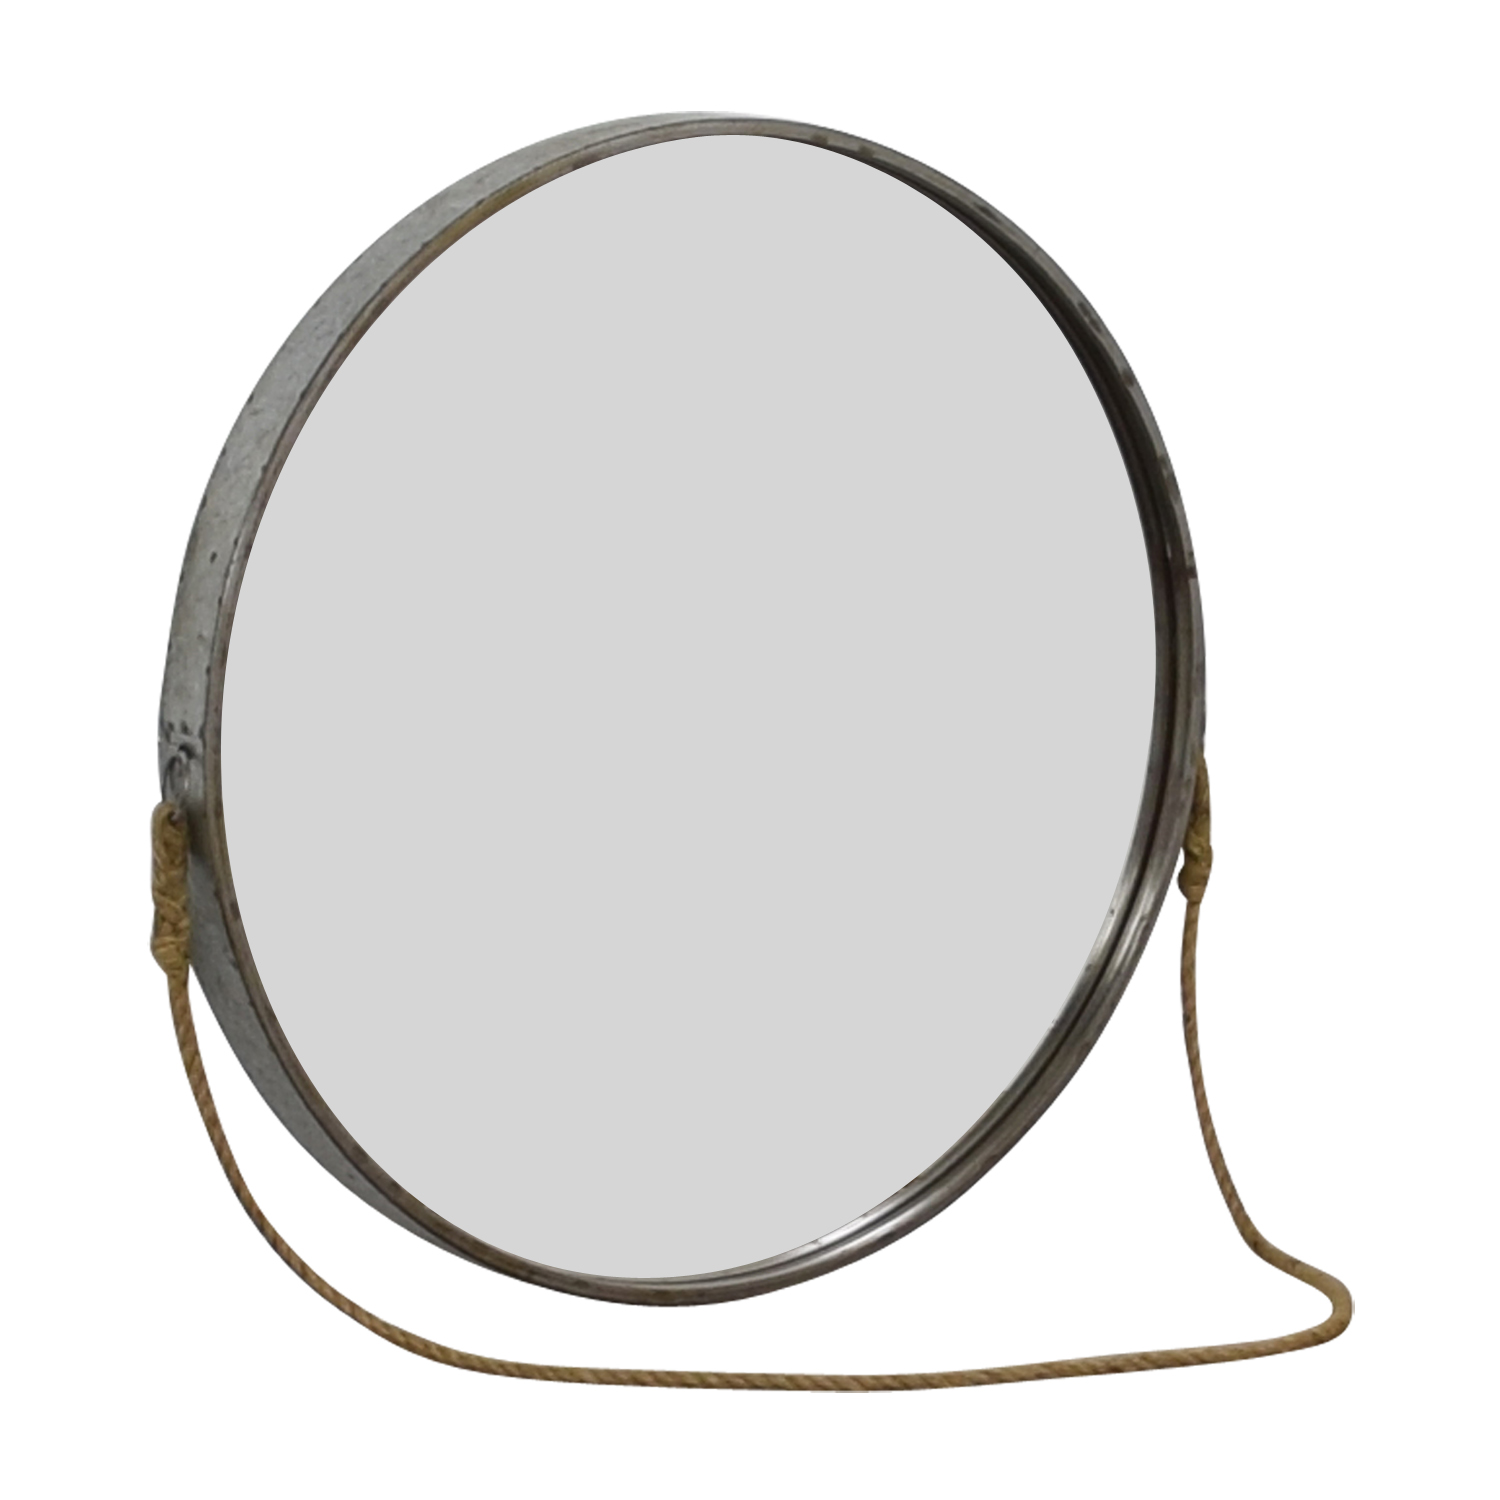 shop Bed Bath & Beyond Round Hanging Mirror Bed Bath & Beyond Decor